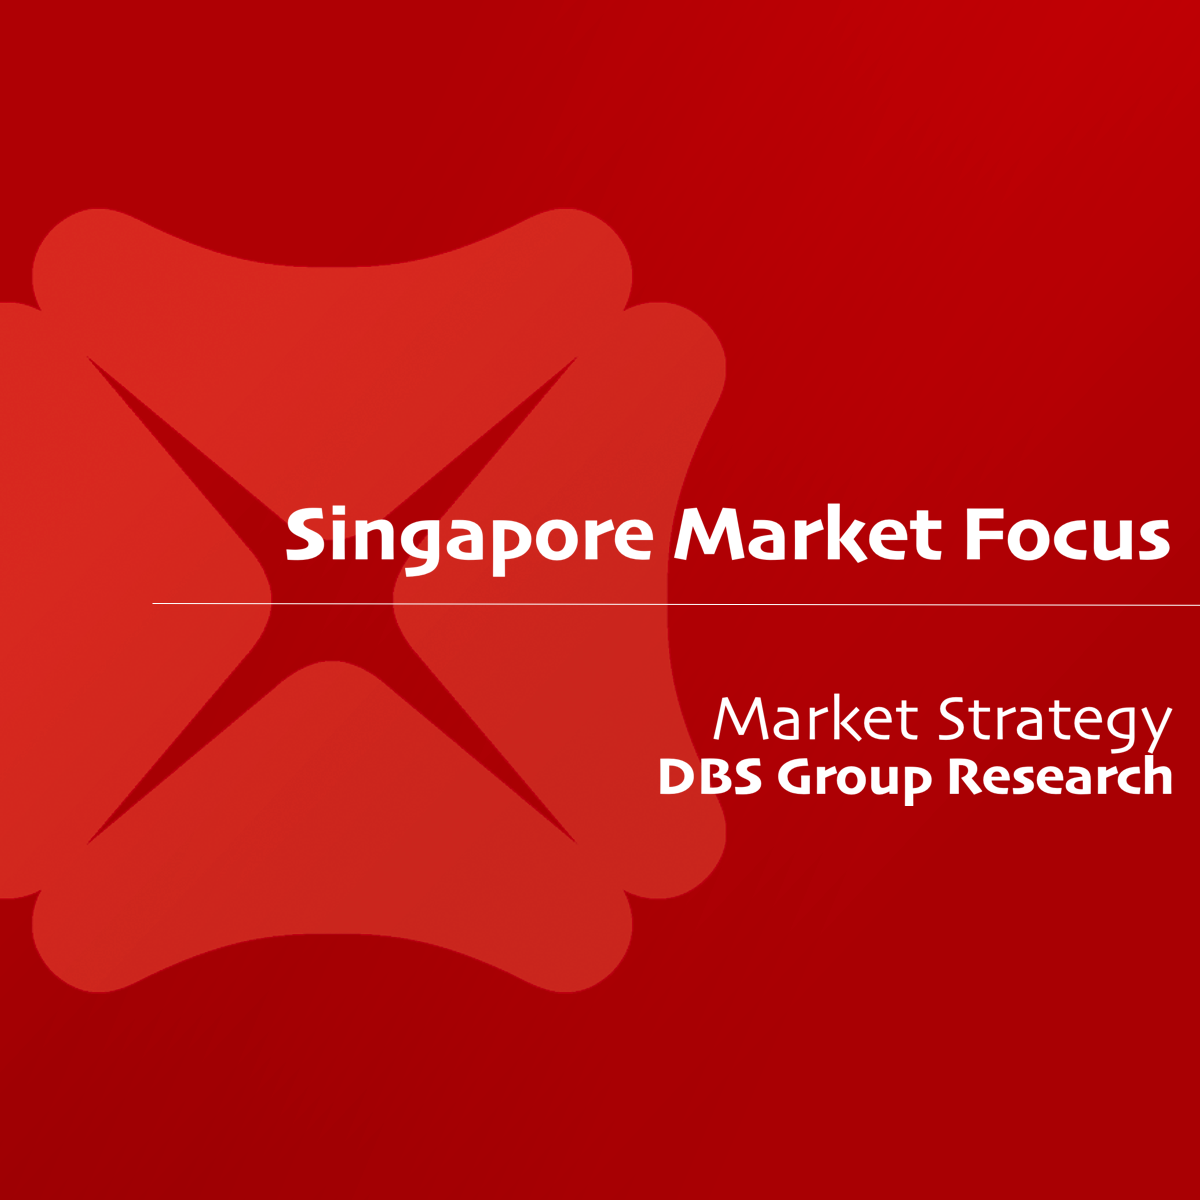 Singapore Market Outlook and Strategy - DBS Research | SGinvestors.io